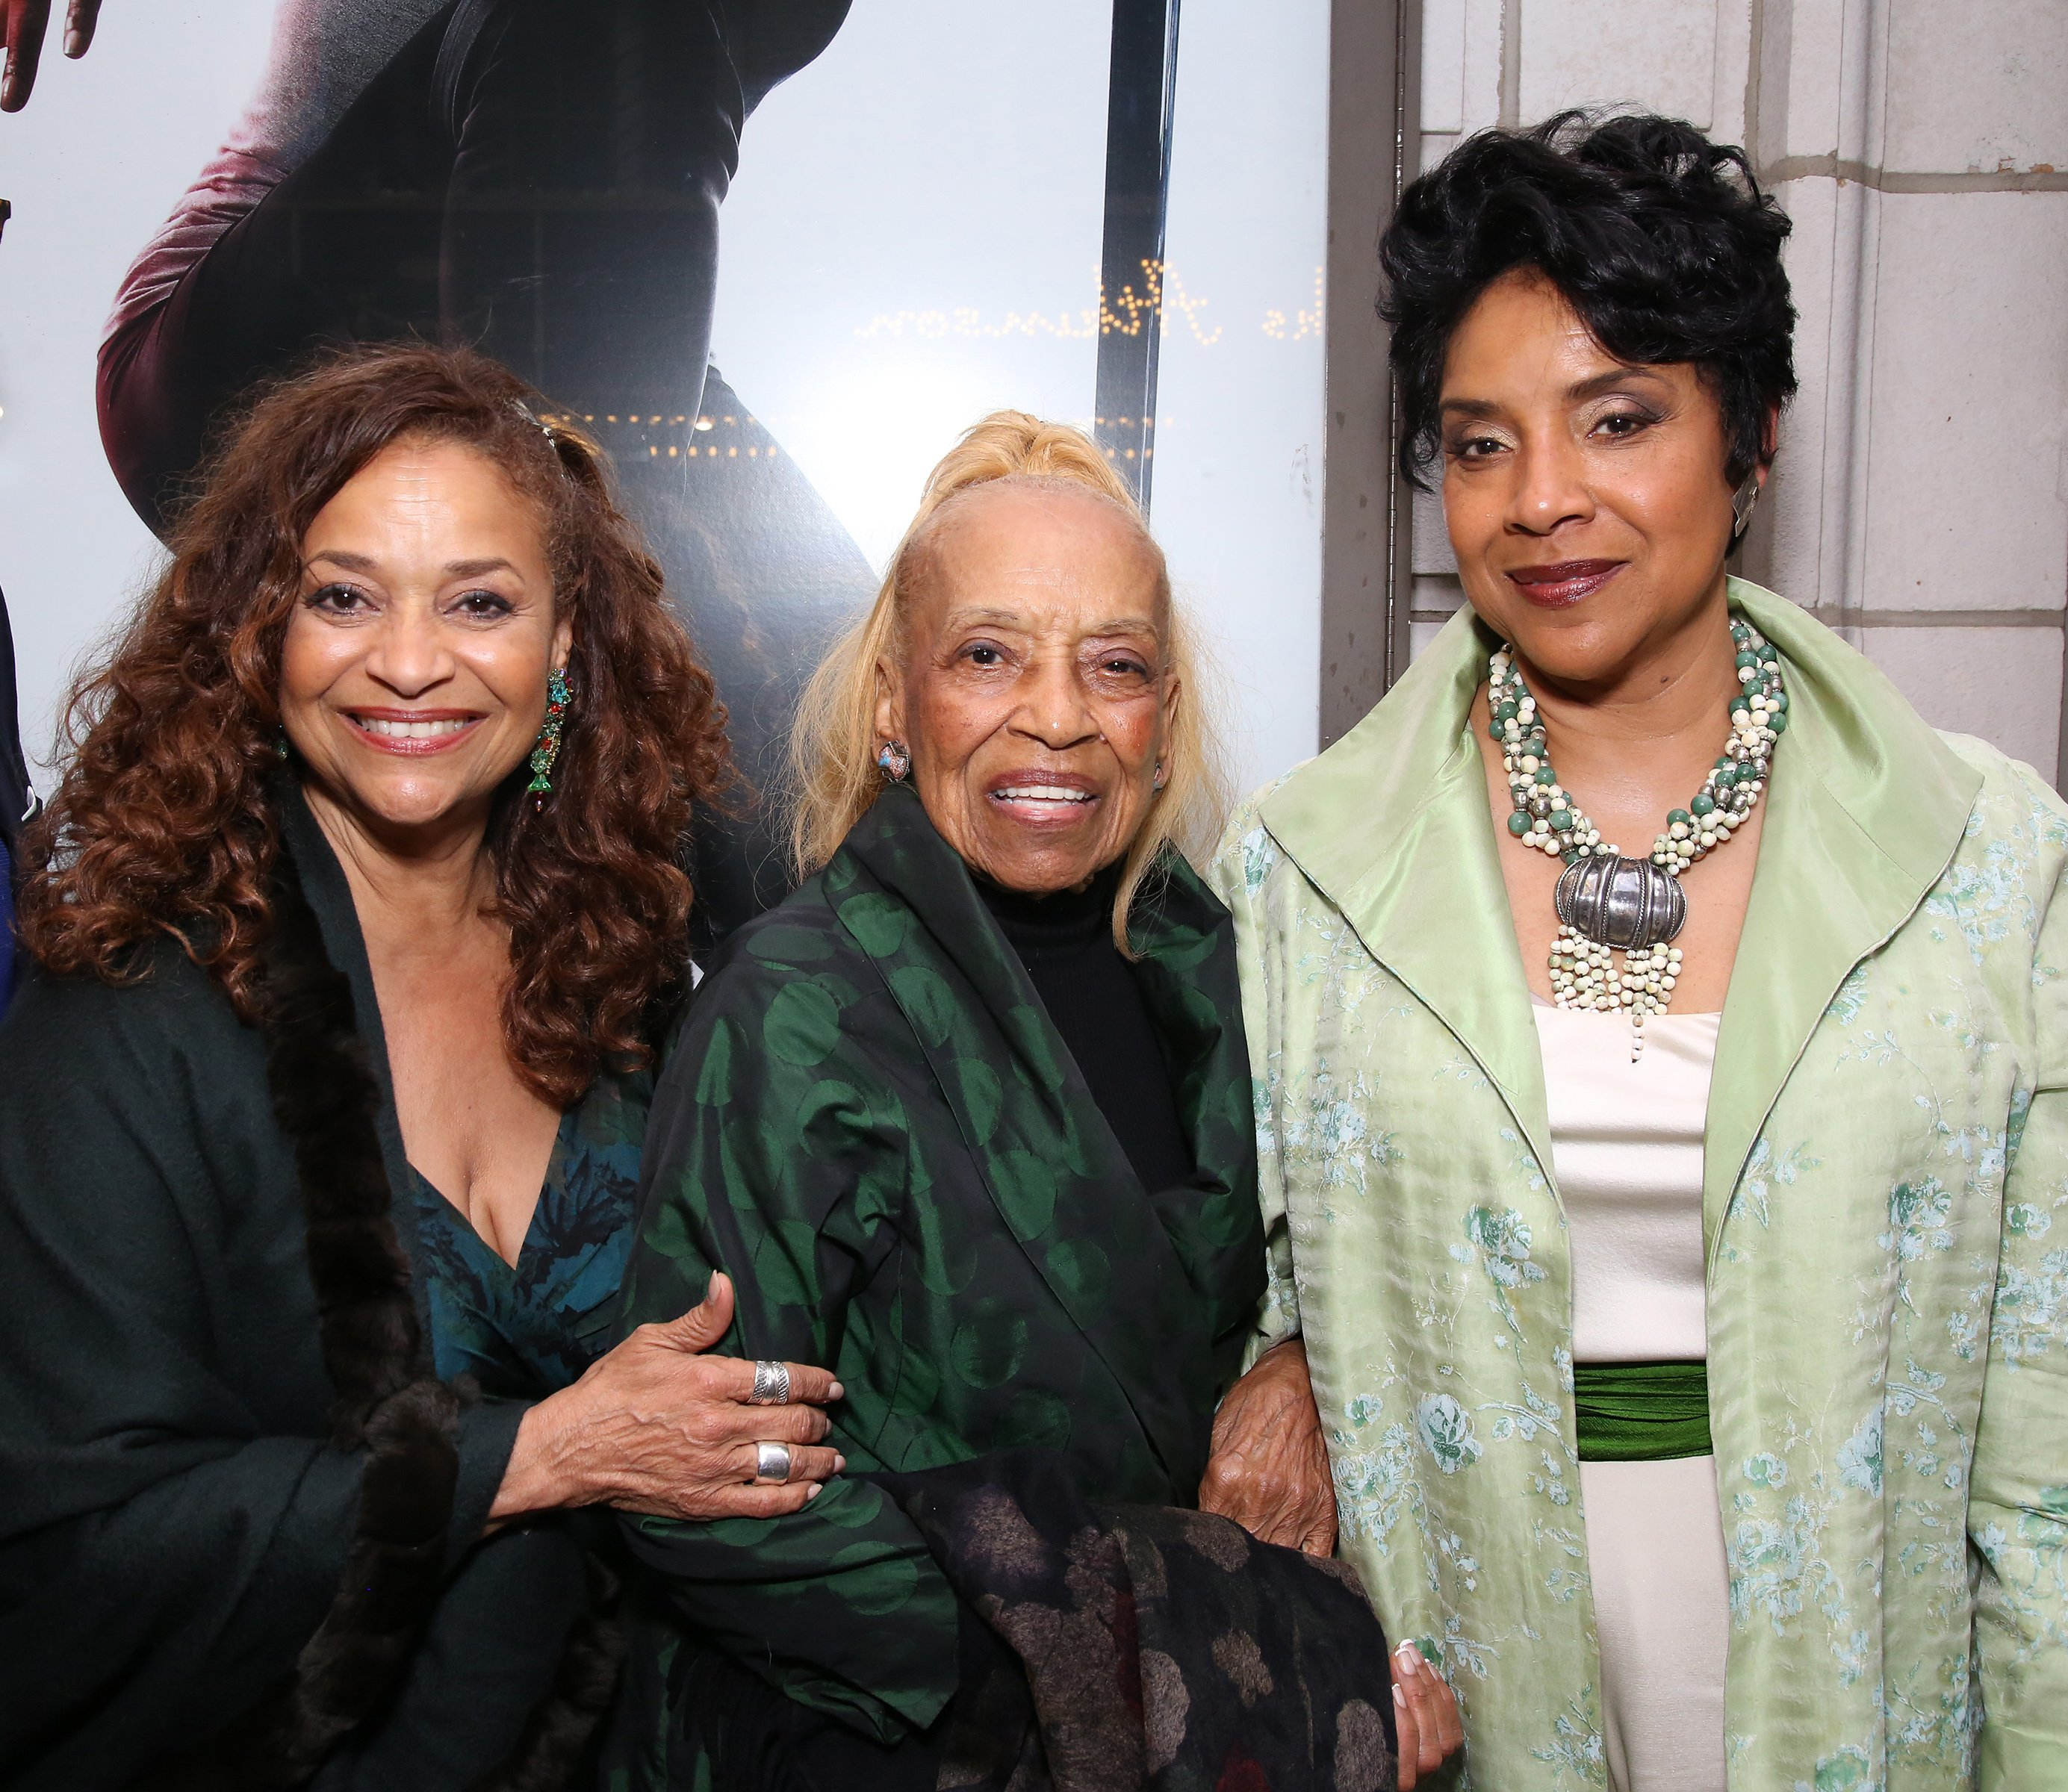 (L-R) Debbie Allen, Vivian Ayers & Phylicia Rashad at the Broadway Opening Night of 'Saint Joan' on April 25, 2018 in New York City | Photo: Getty Images